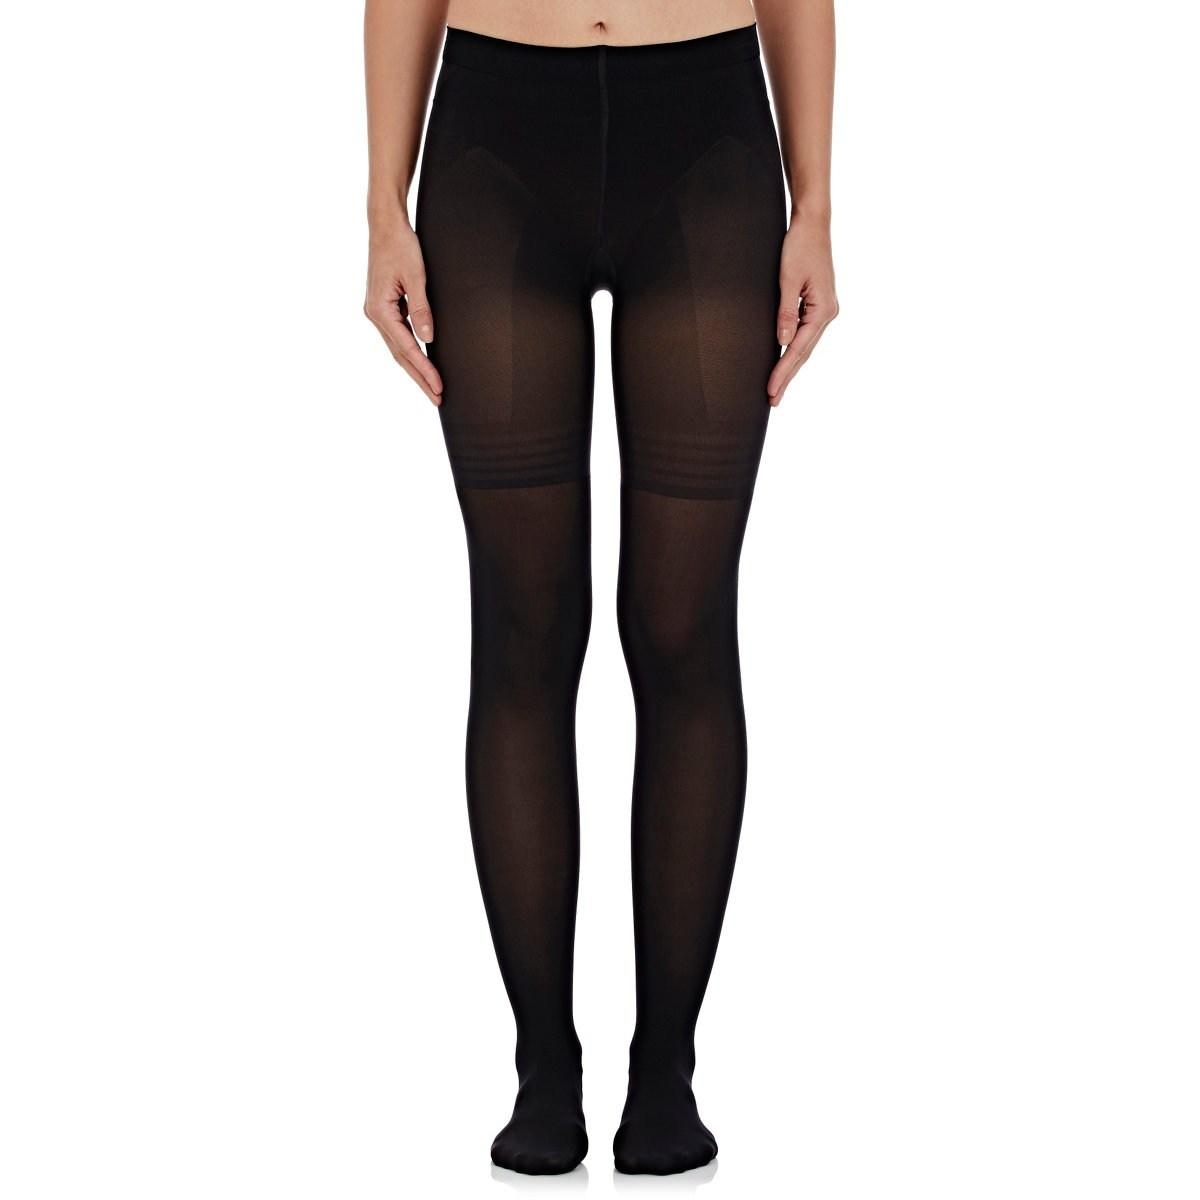 e65ae40615 Wolford - Black Power Shape 50 Control Top Tights Size M - Lyst. View  fullscreen